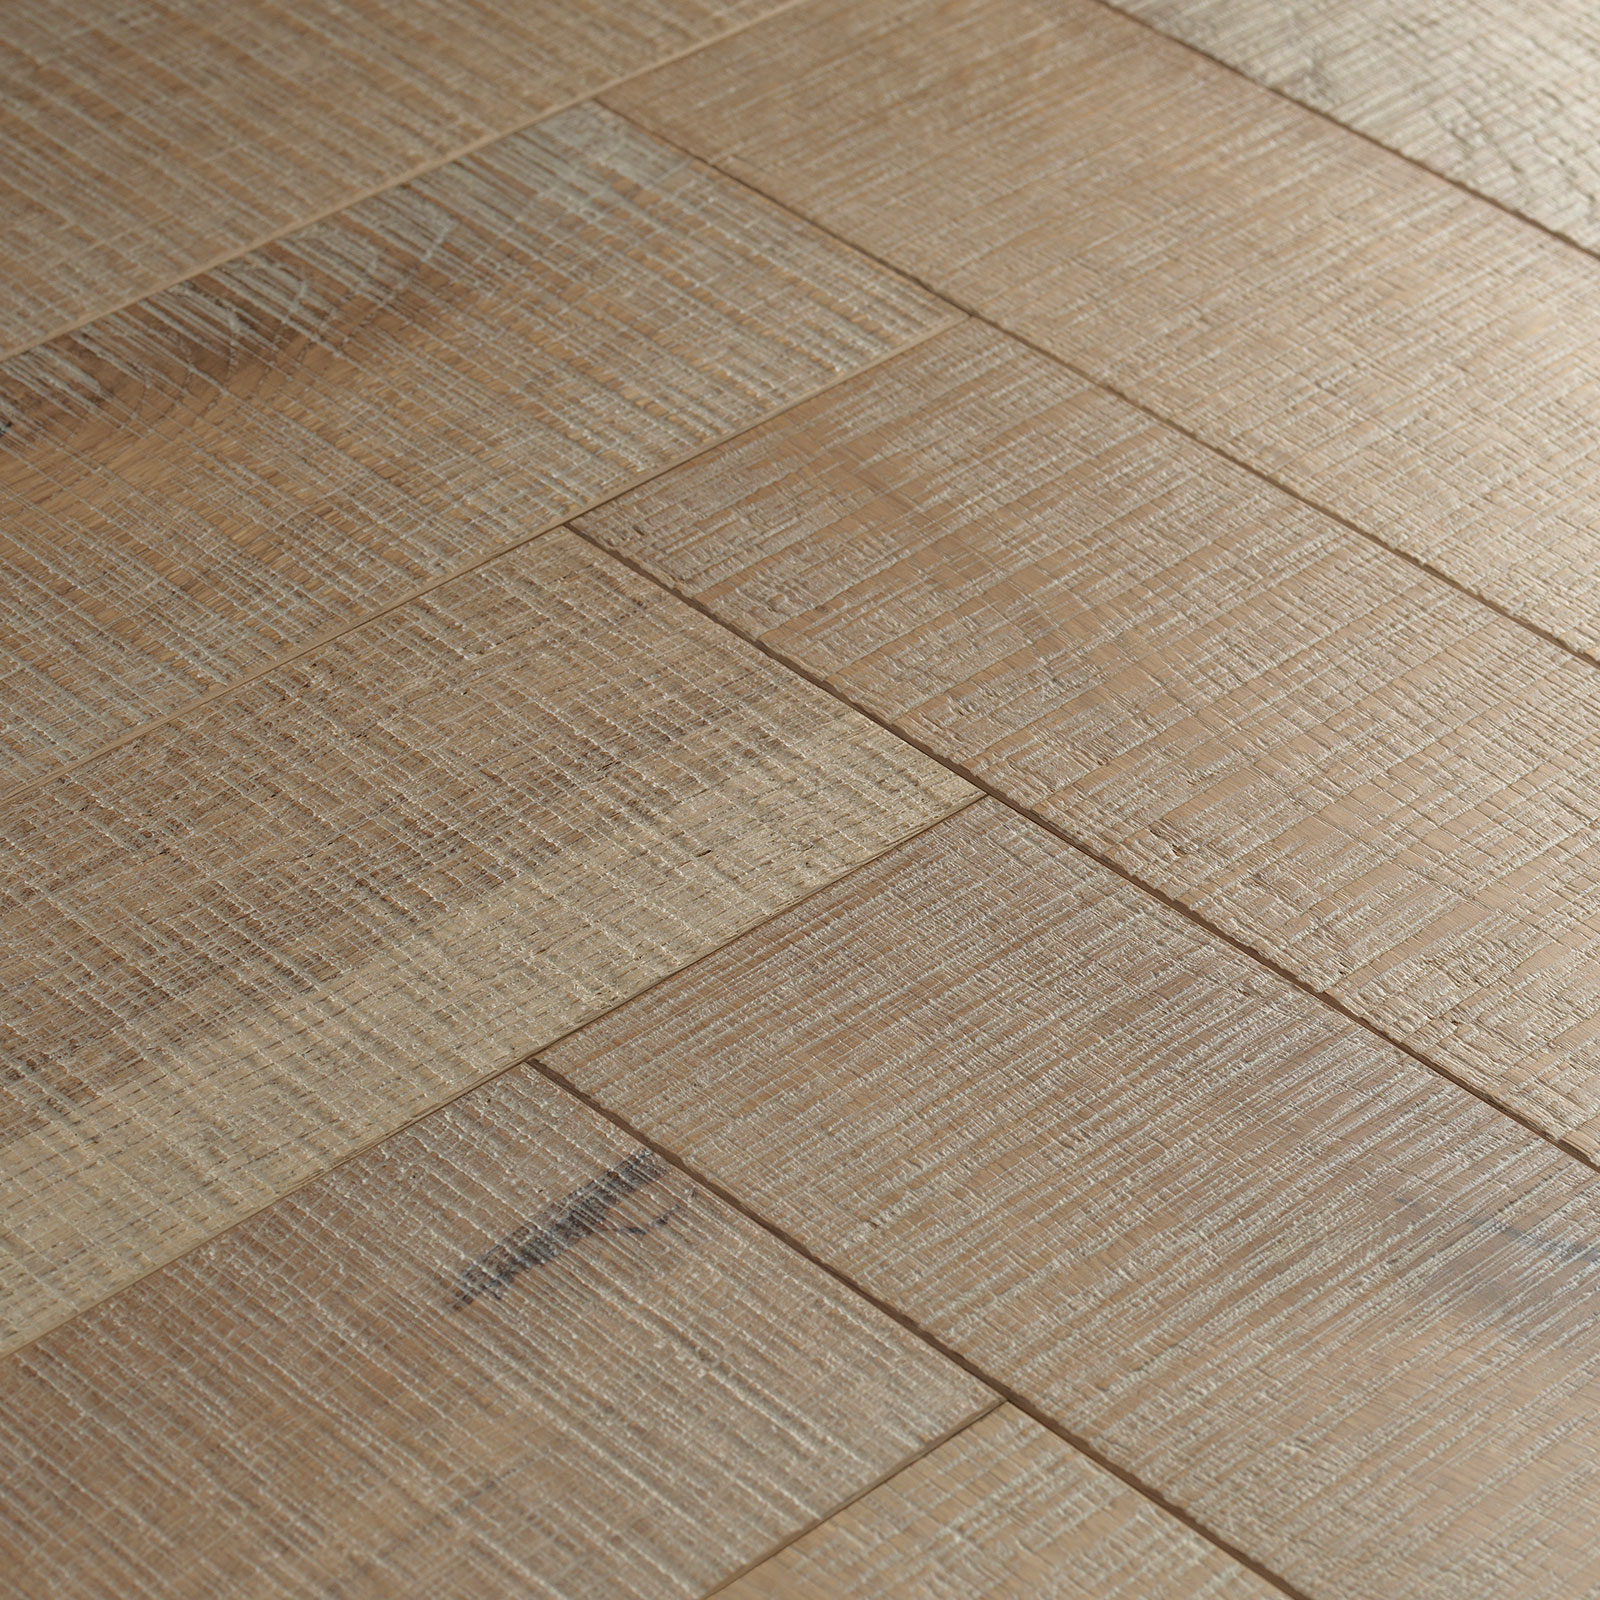 Goodrich Salted Oak Parquet Flooring Woodpecker